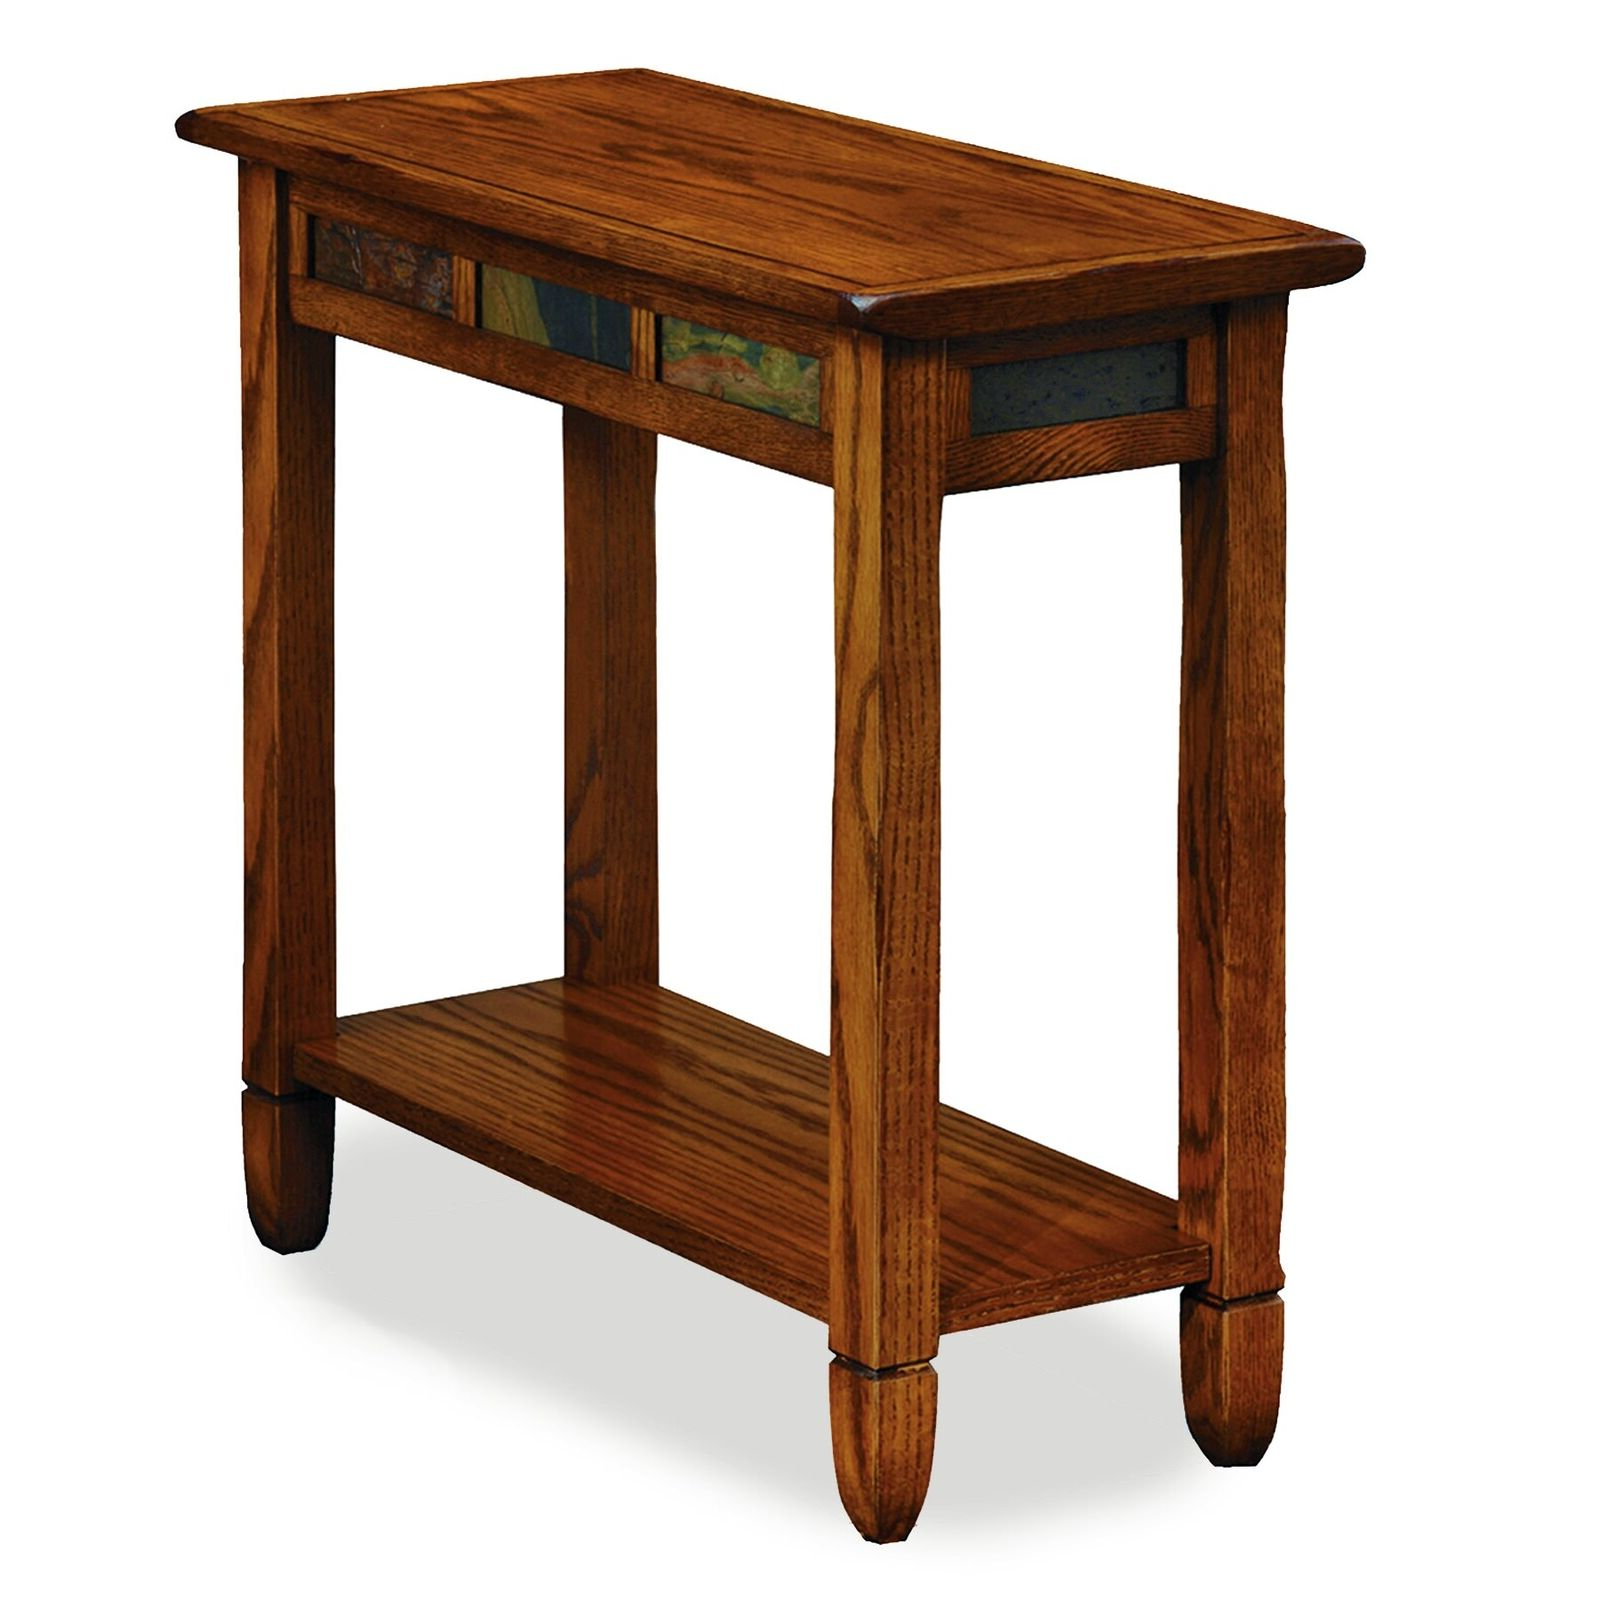 Fashionable Copper Grove Ixia Rustic Oak And Slate Tile Coffee Tables With Leick 10060 Rustic Oak Chairside End Table (View 7 of 20)